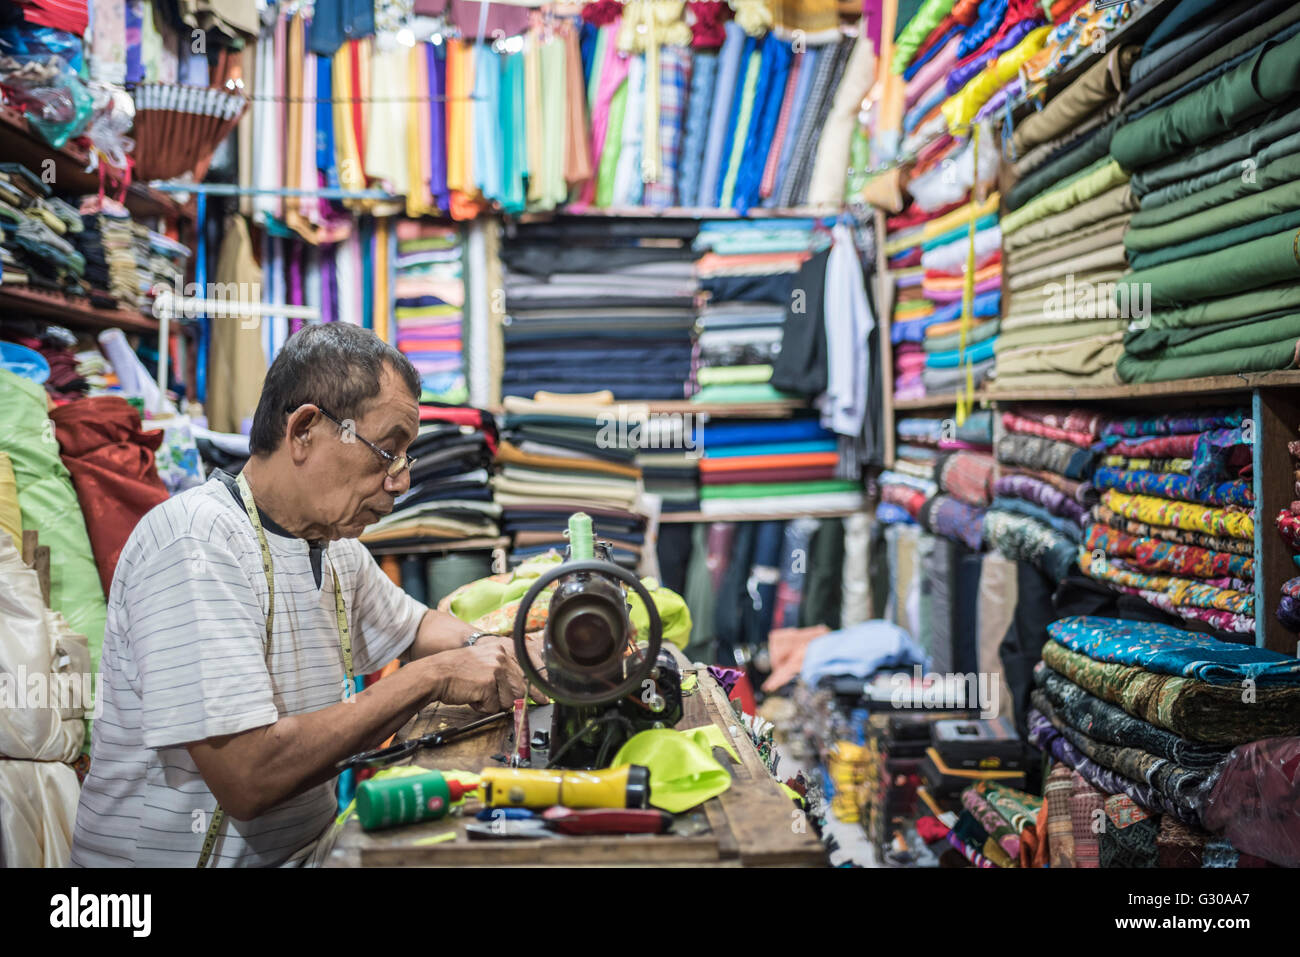 Man sewing in Sabang Market, Pulau Weh Island, Aceh Province, Sumatra, Indonesia, Southeast Asia, Asia - Stock Image